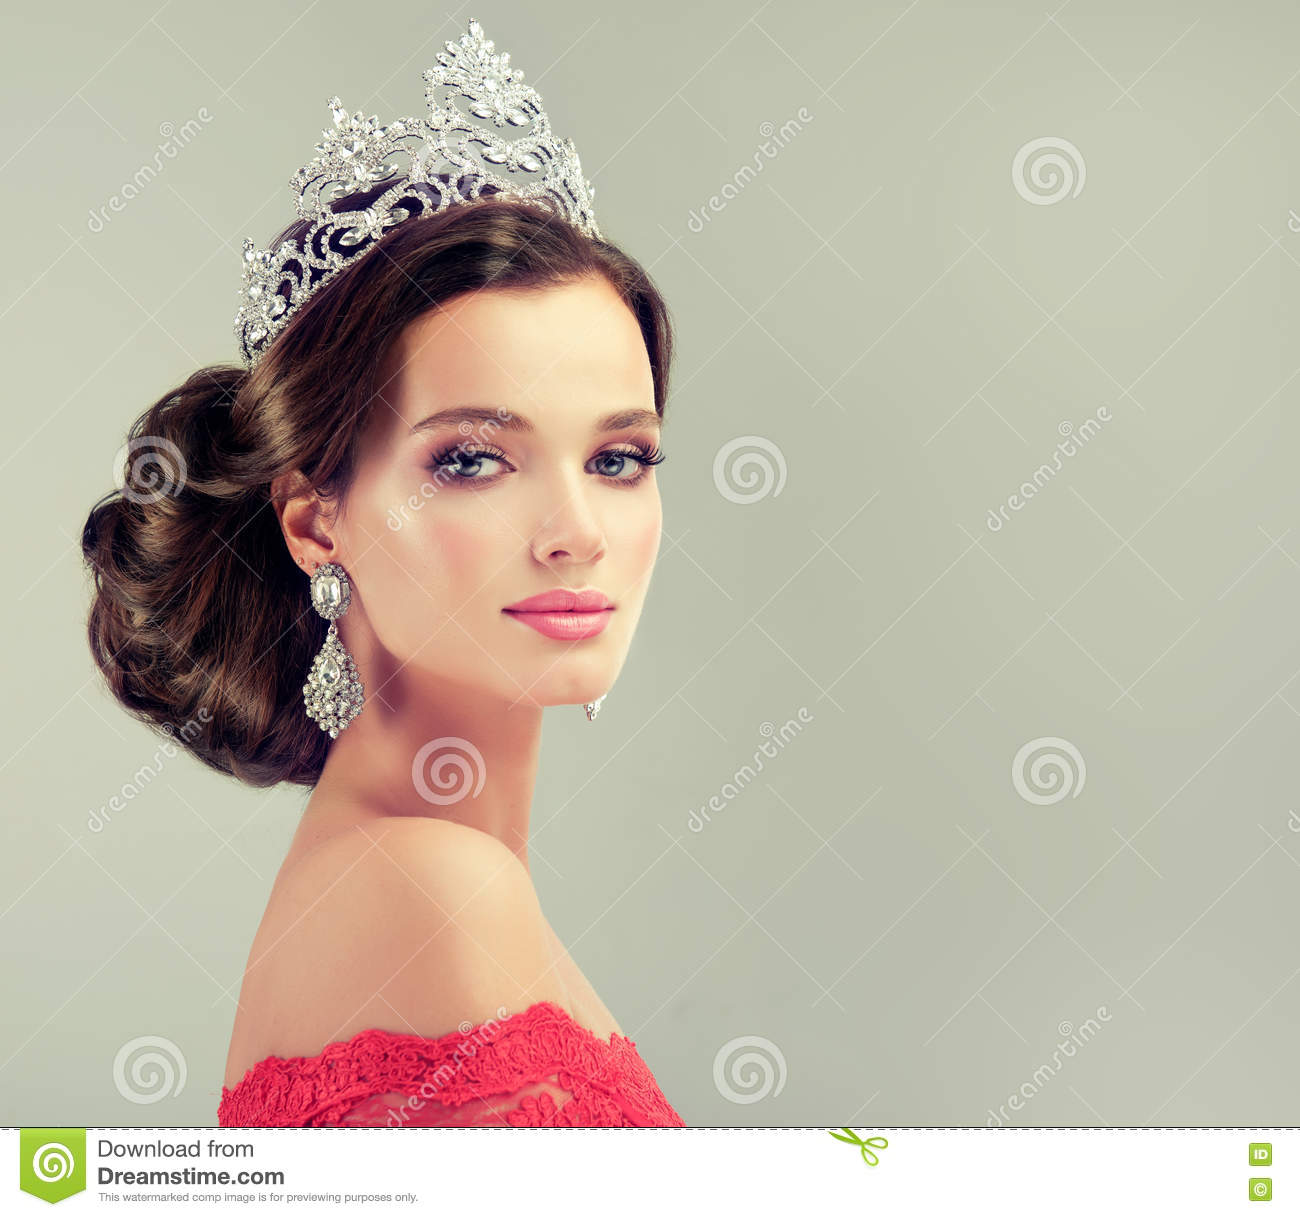 Model In A Delicate Make Up Dressed In A Red Gown And Crown Stock